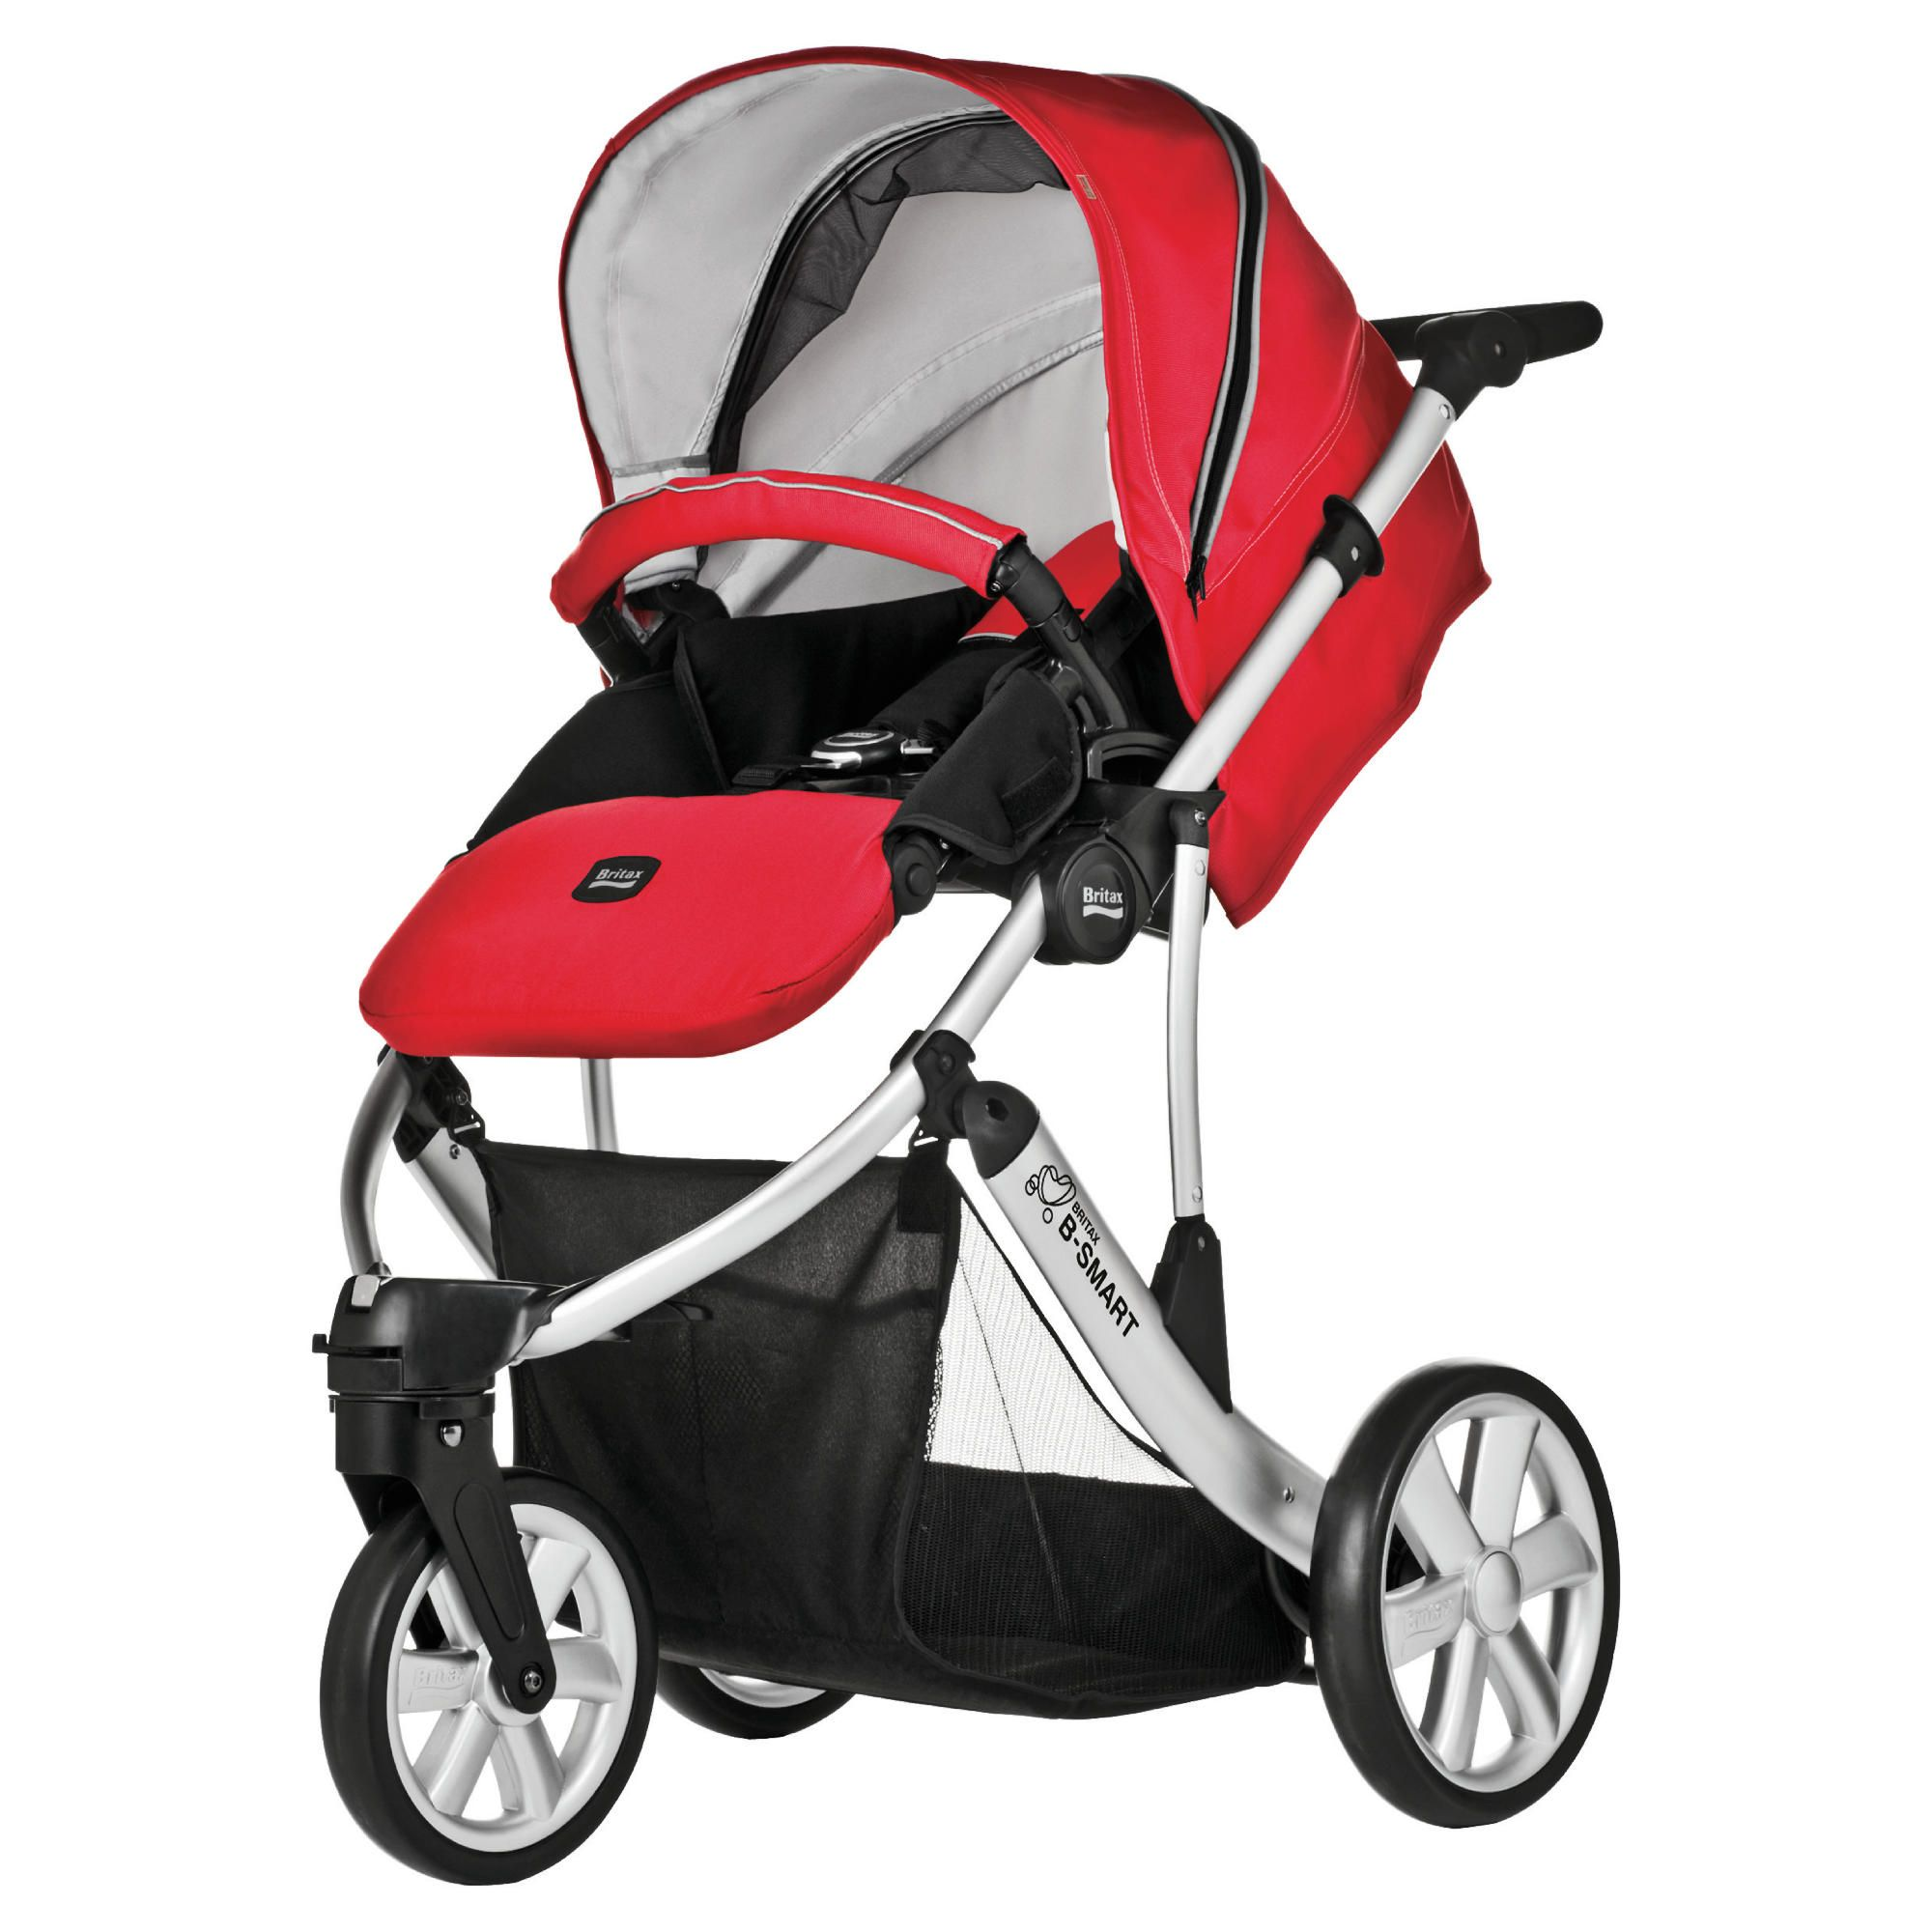 Britax B Smart 3 Wheeler Pushchair, Venetian Red at Tesco Direct